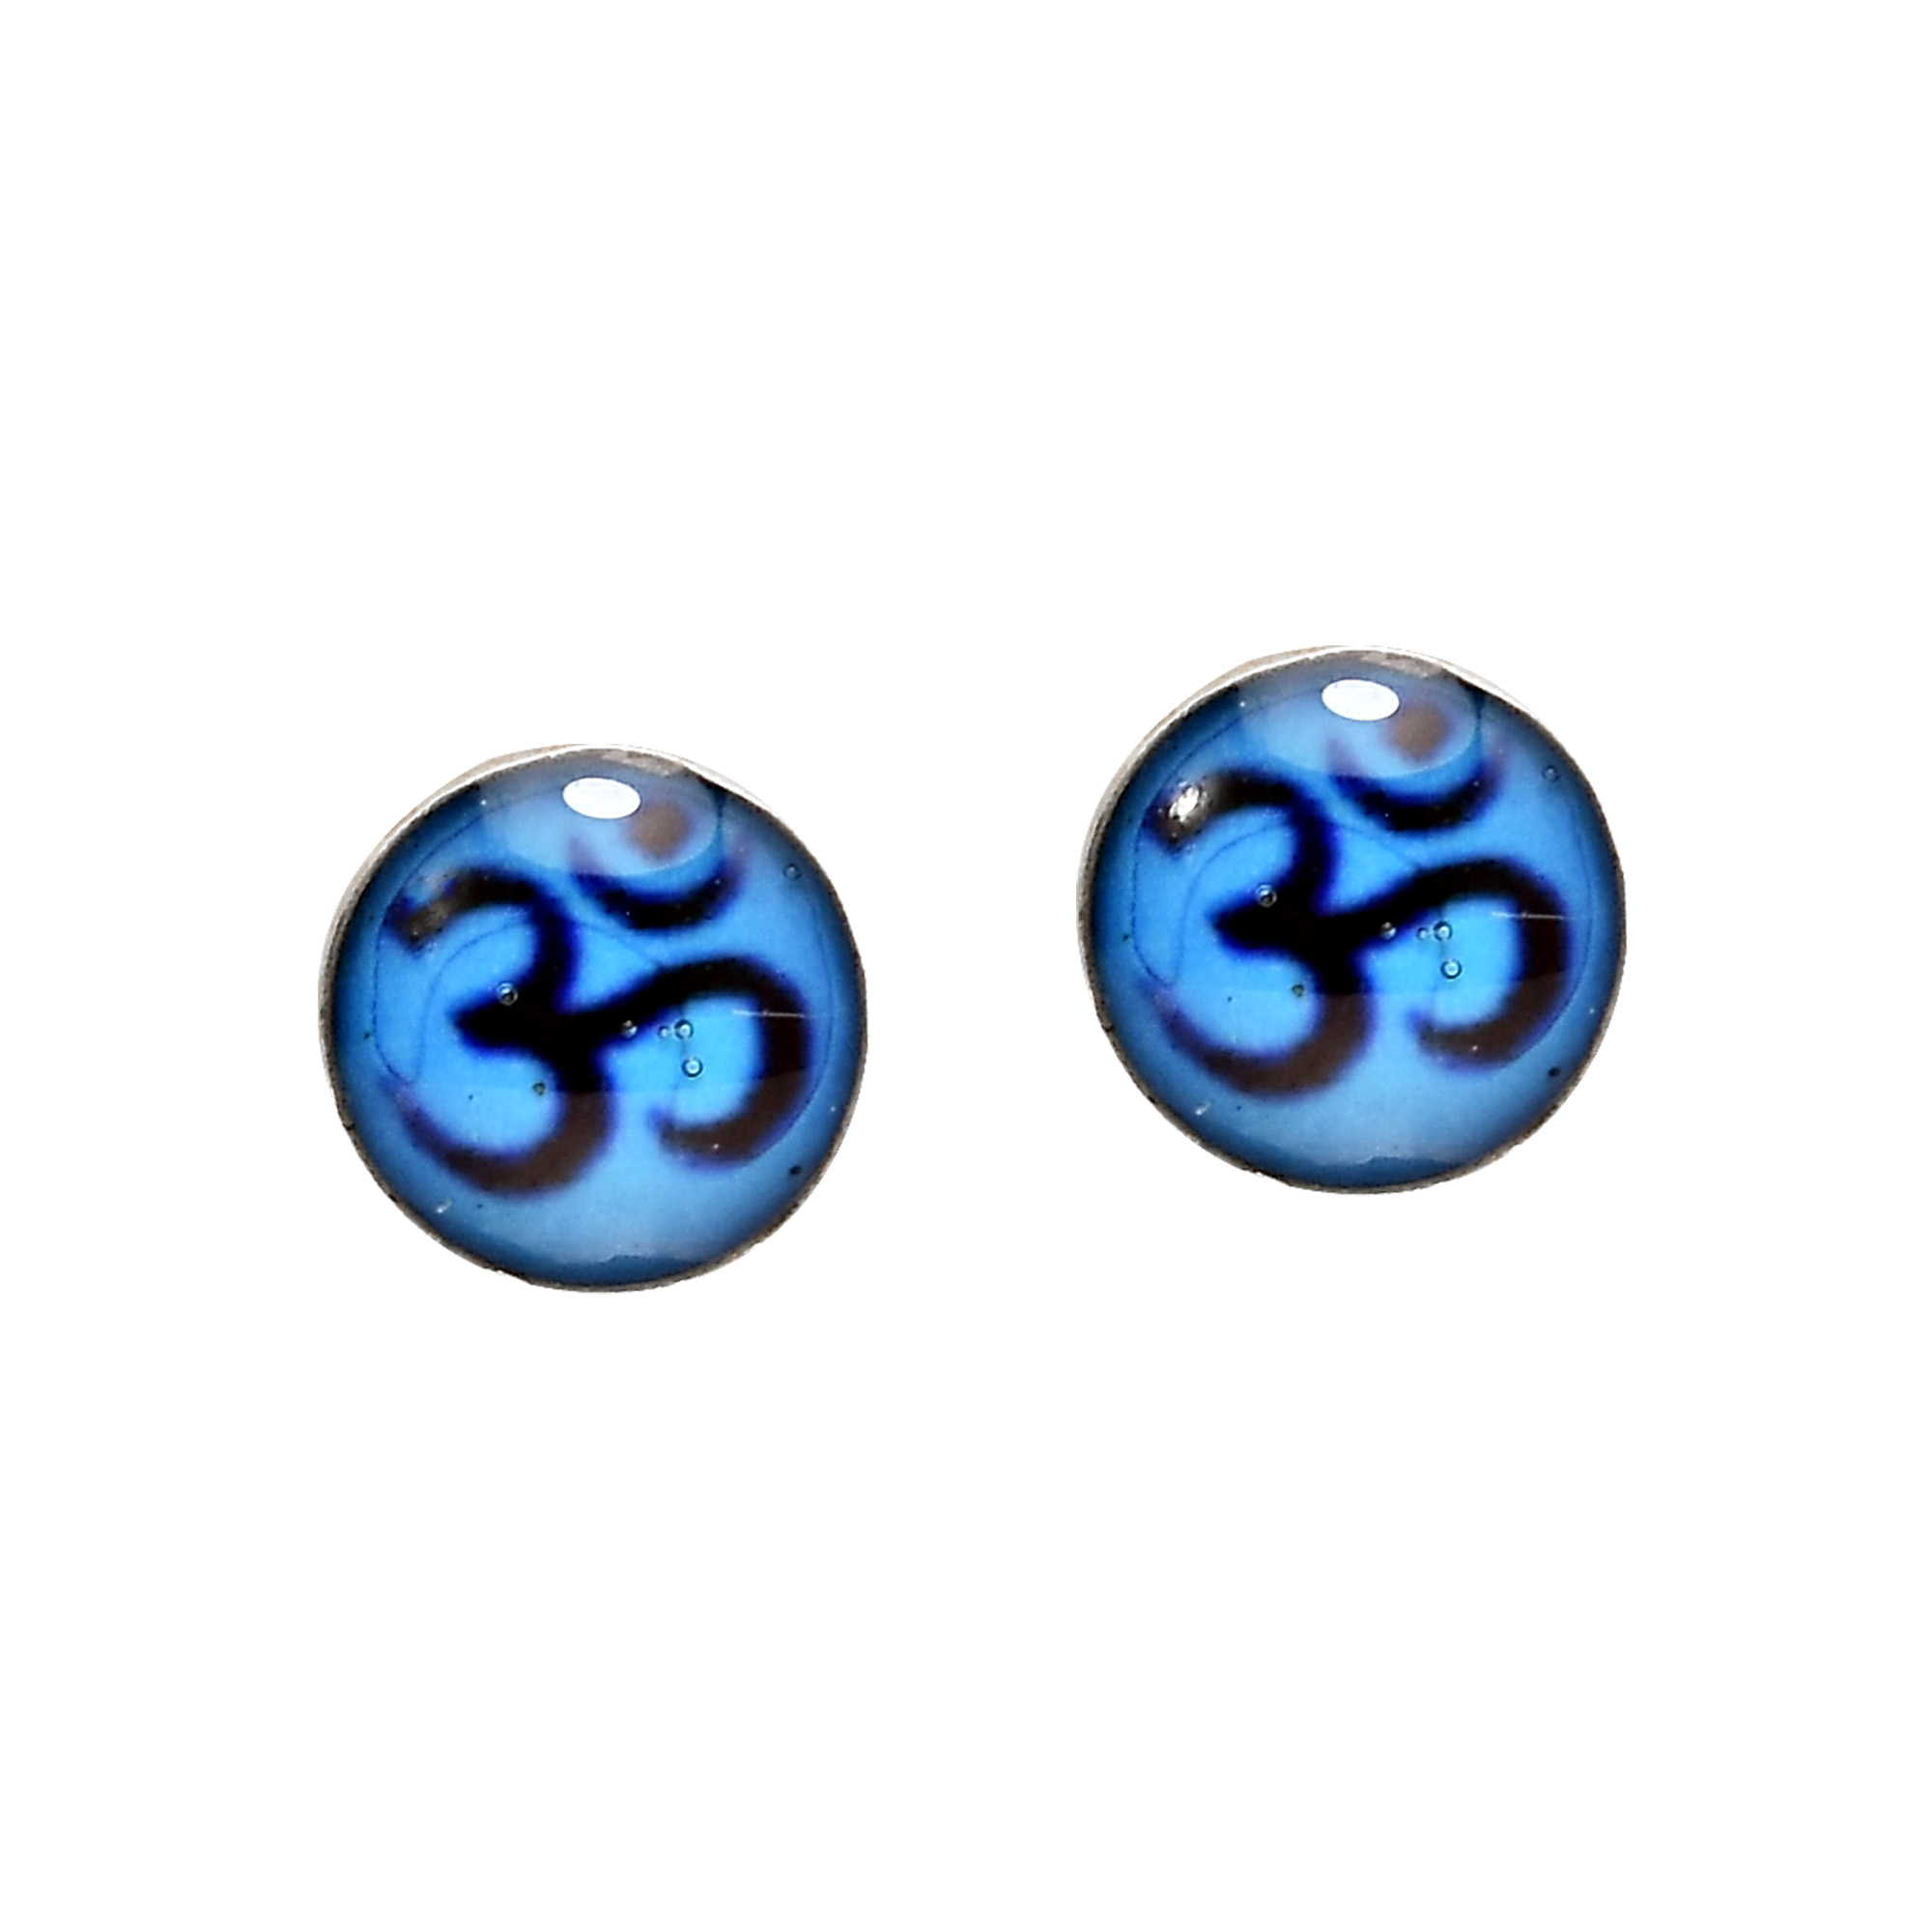 Petite colorful blue aum or om symbol sterling silver stud in hindu and buddhist practices the om or aum is the first mantra said in prayer which invites peace and meditation this idea of attaining inner peace and biocorpaavc Image collections